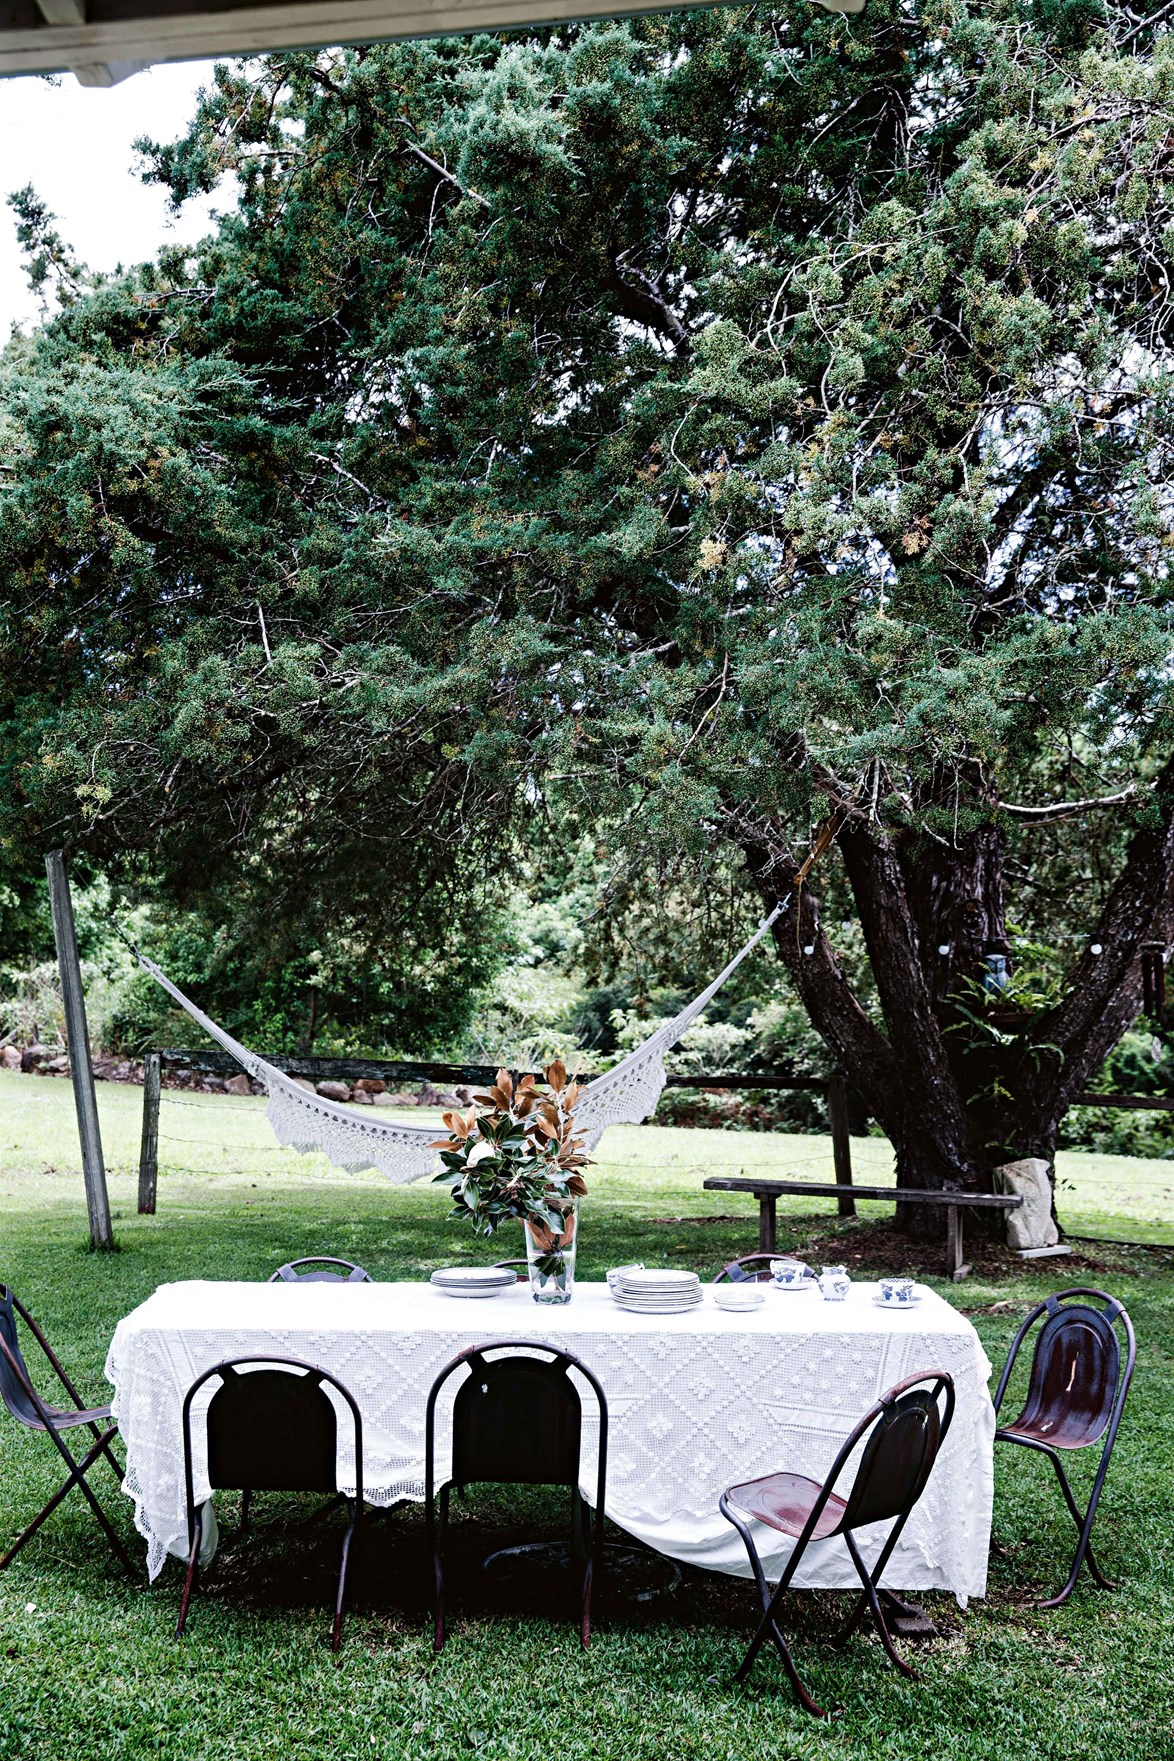 Entertaining outdoors? String up a hammock nearby so guests (or yourself) can sneak away for a post-lunch nap.